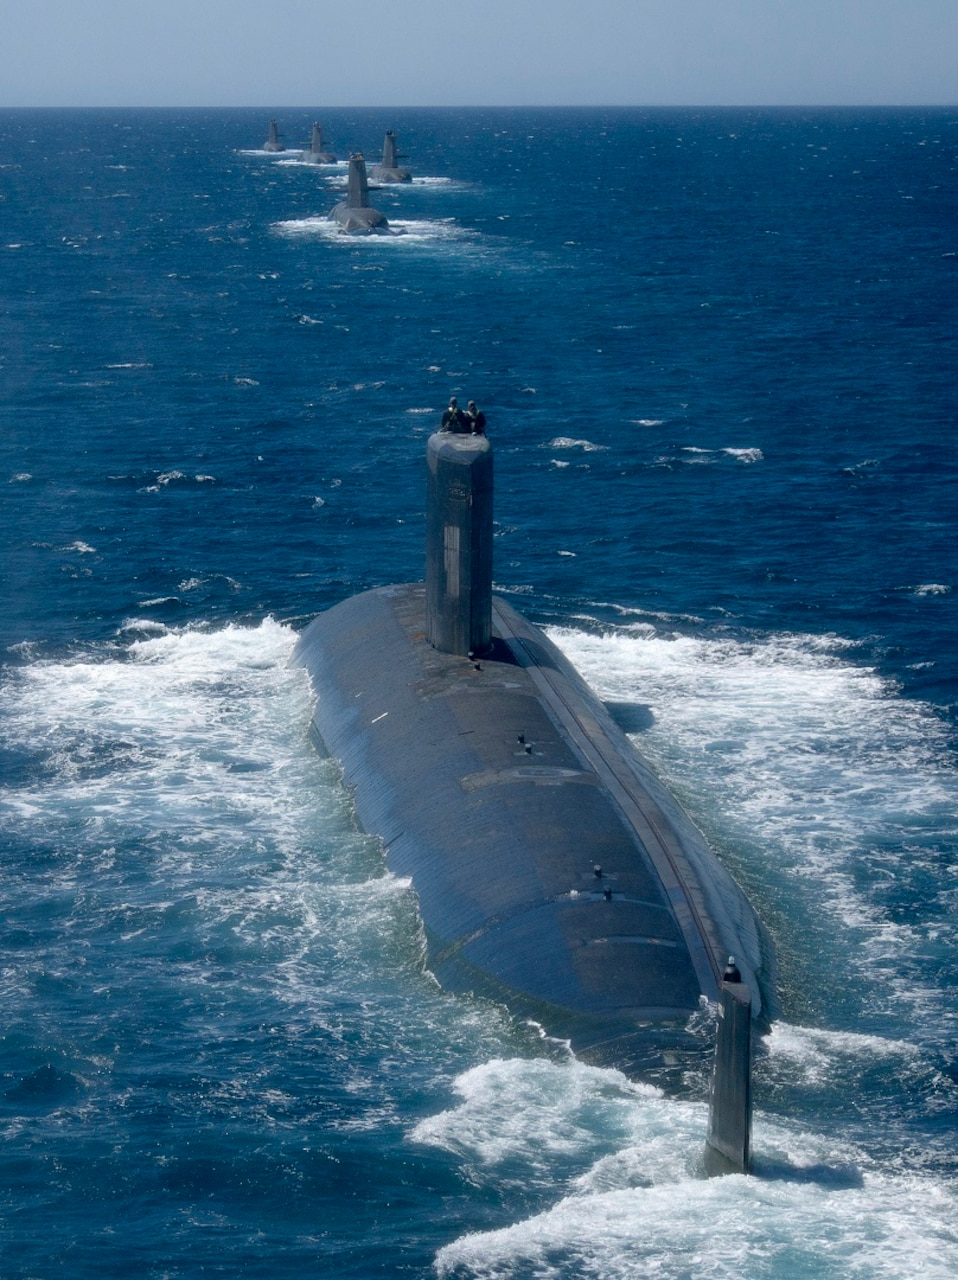 USS Santa Fe (SSN 763) joins Royal Australian Navy Collins Class Submarines HMAS Collins, HMAS Farncomb, HMAS Dechaineux and HMAS Sheean in formation in the West Australian Exercise Area. Royal Australian Navy Collins Class Submarines HMAS Collins, HMAS Farncomb, HMAS Dechaineux and HMAS Sheean were joined in formation by United States Navy Submarine USS Santa Fe in the West Australian Exercise Area for a PHOTOEX in February 2019. The submarines were in the area to participate in a number of activities, including Exercise Lungfish 2019 and Exercise Ocean Explorer 2019.